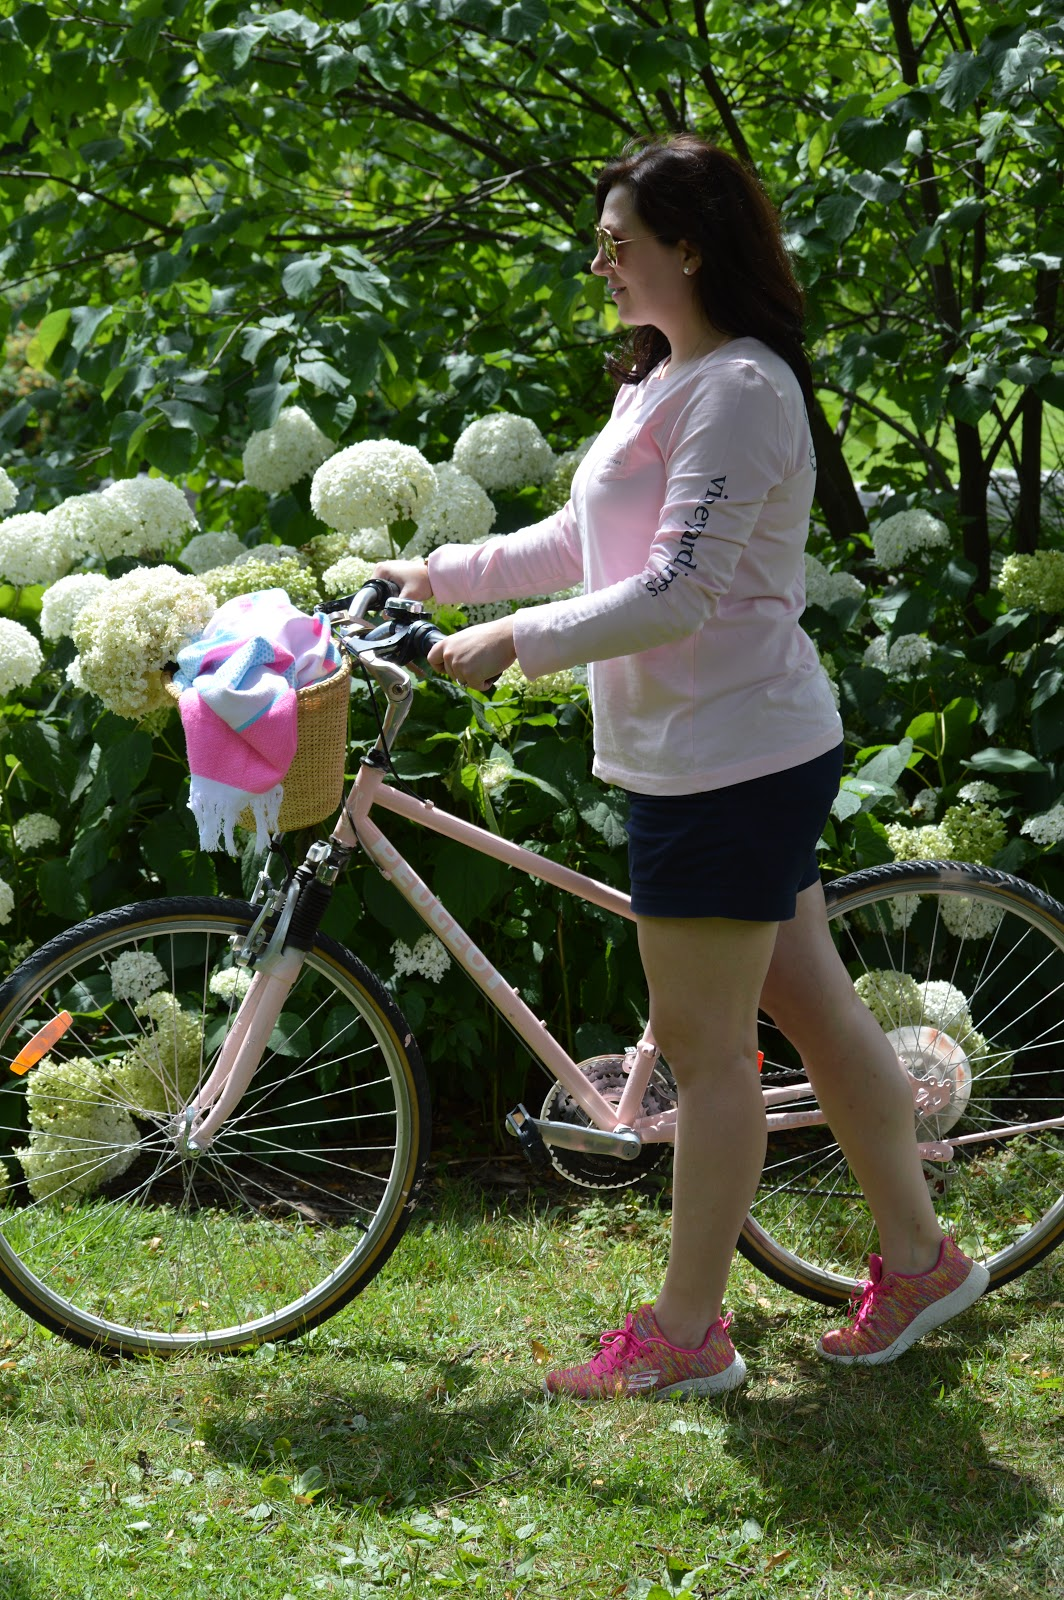 Vineyard Vines pink bike